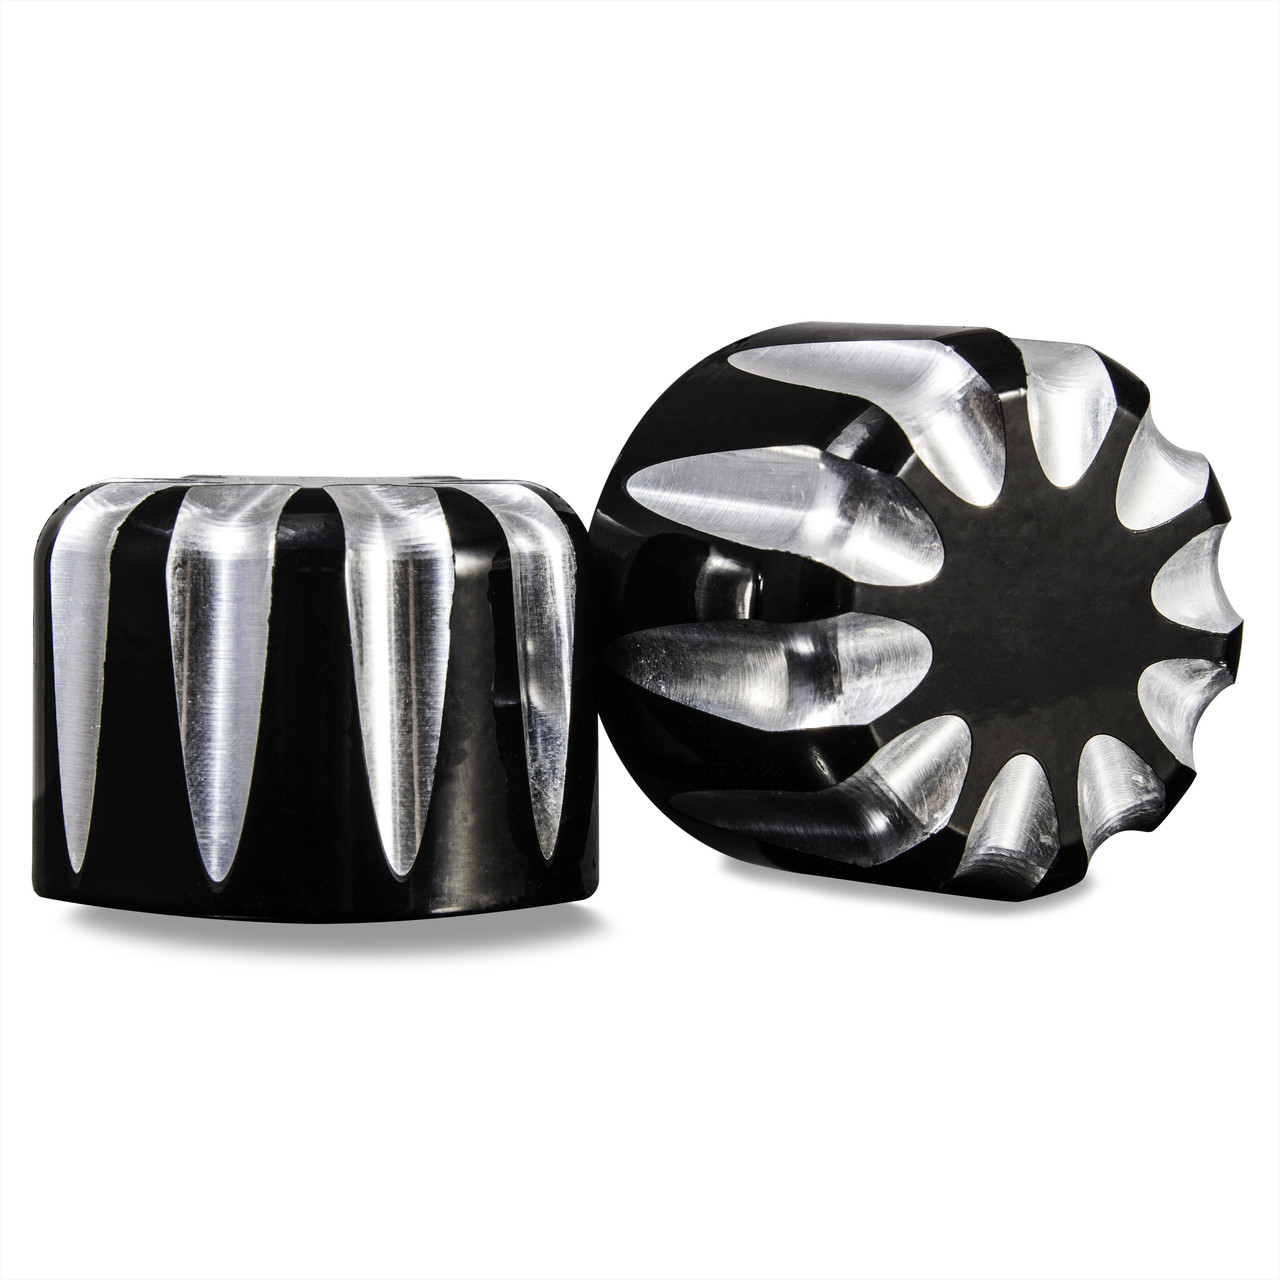 Black contrast cut 3D harley front axle covers